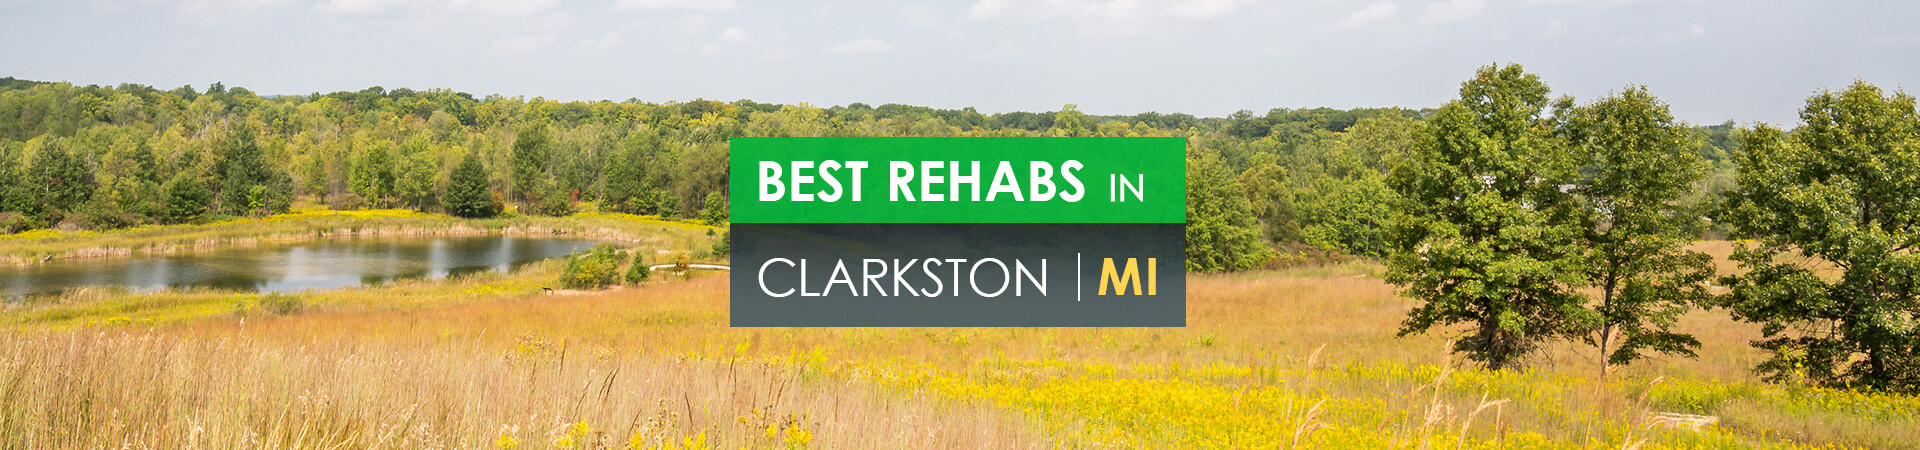 Best rehabs in Clarkston, MI